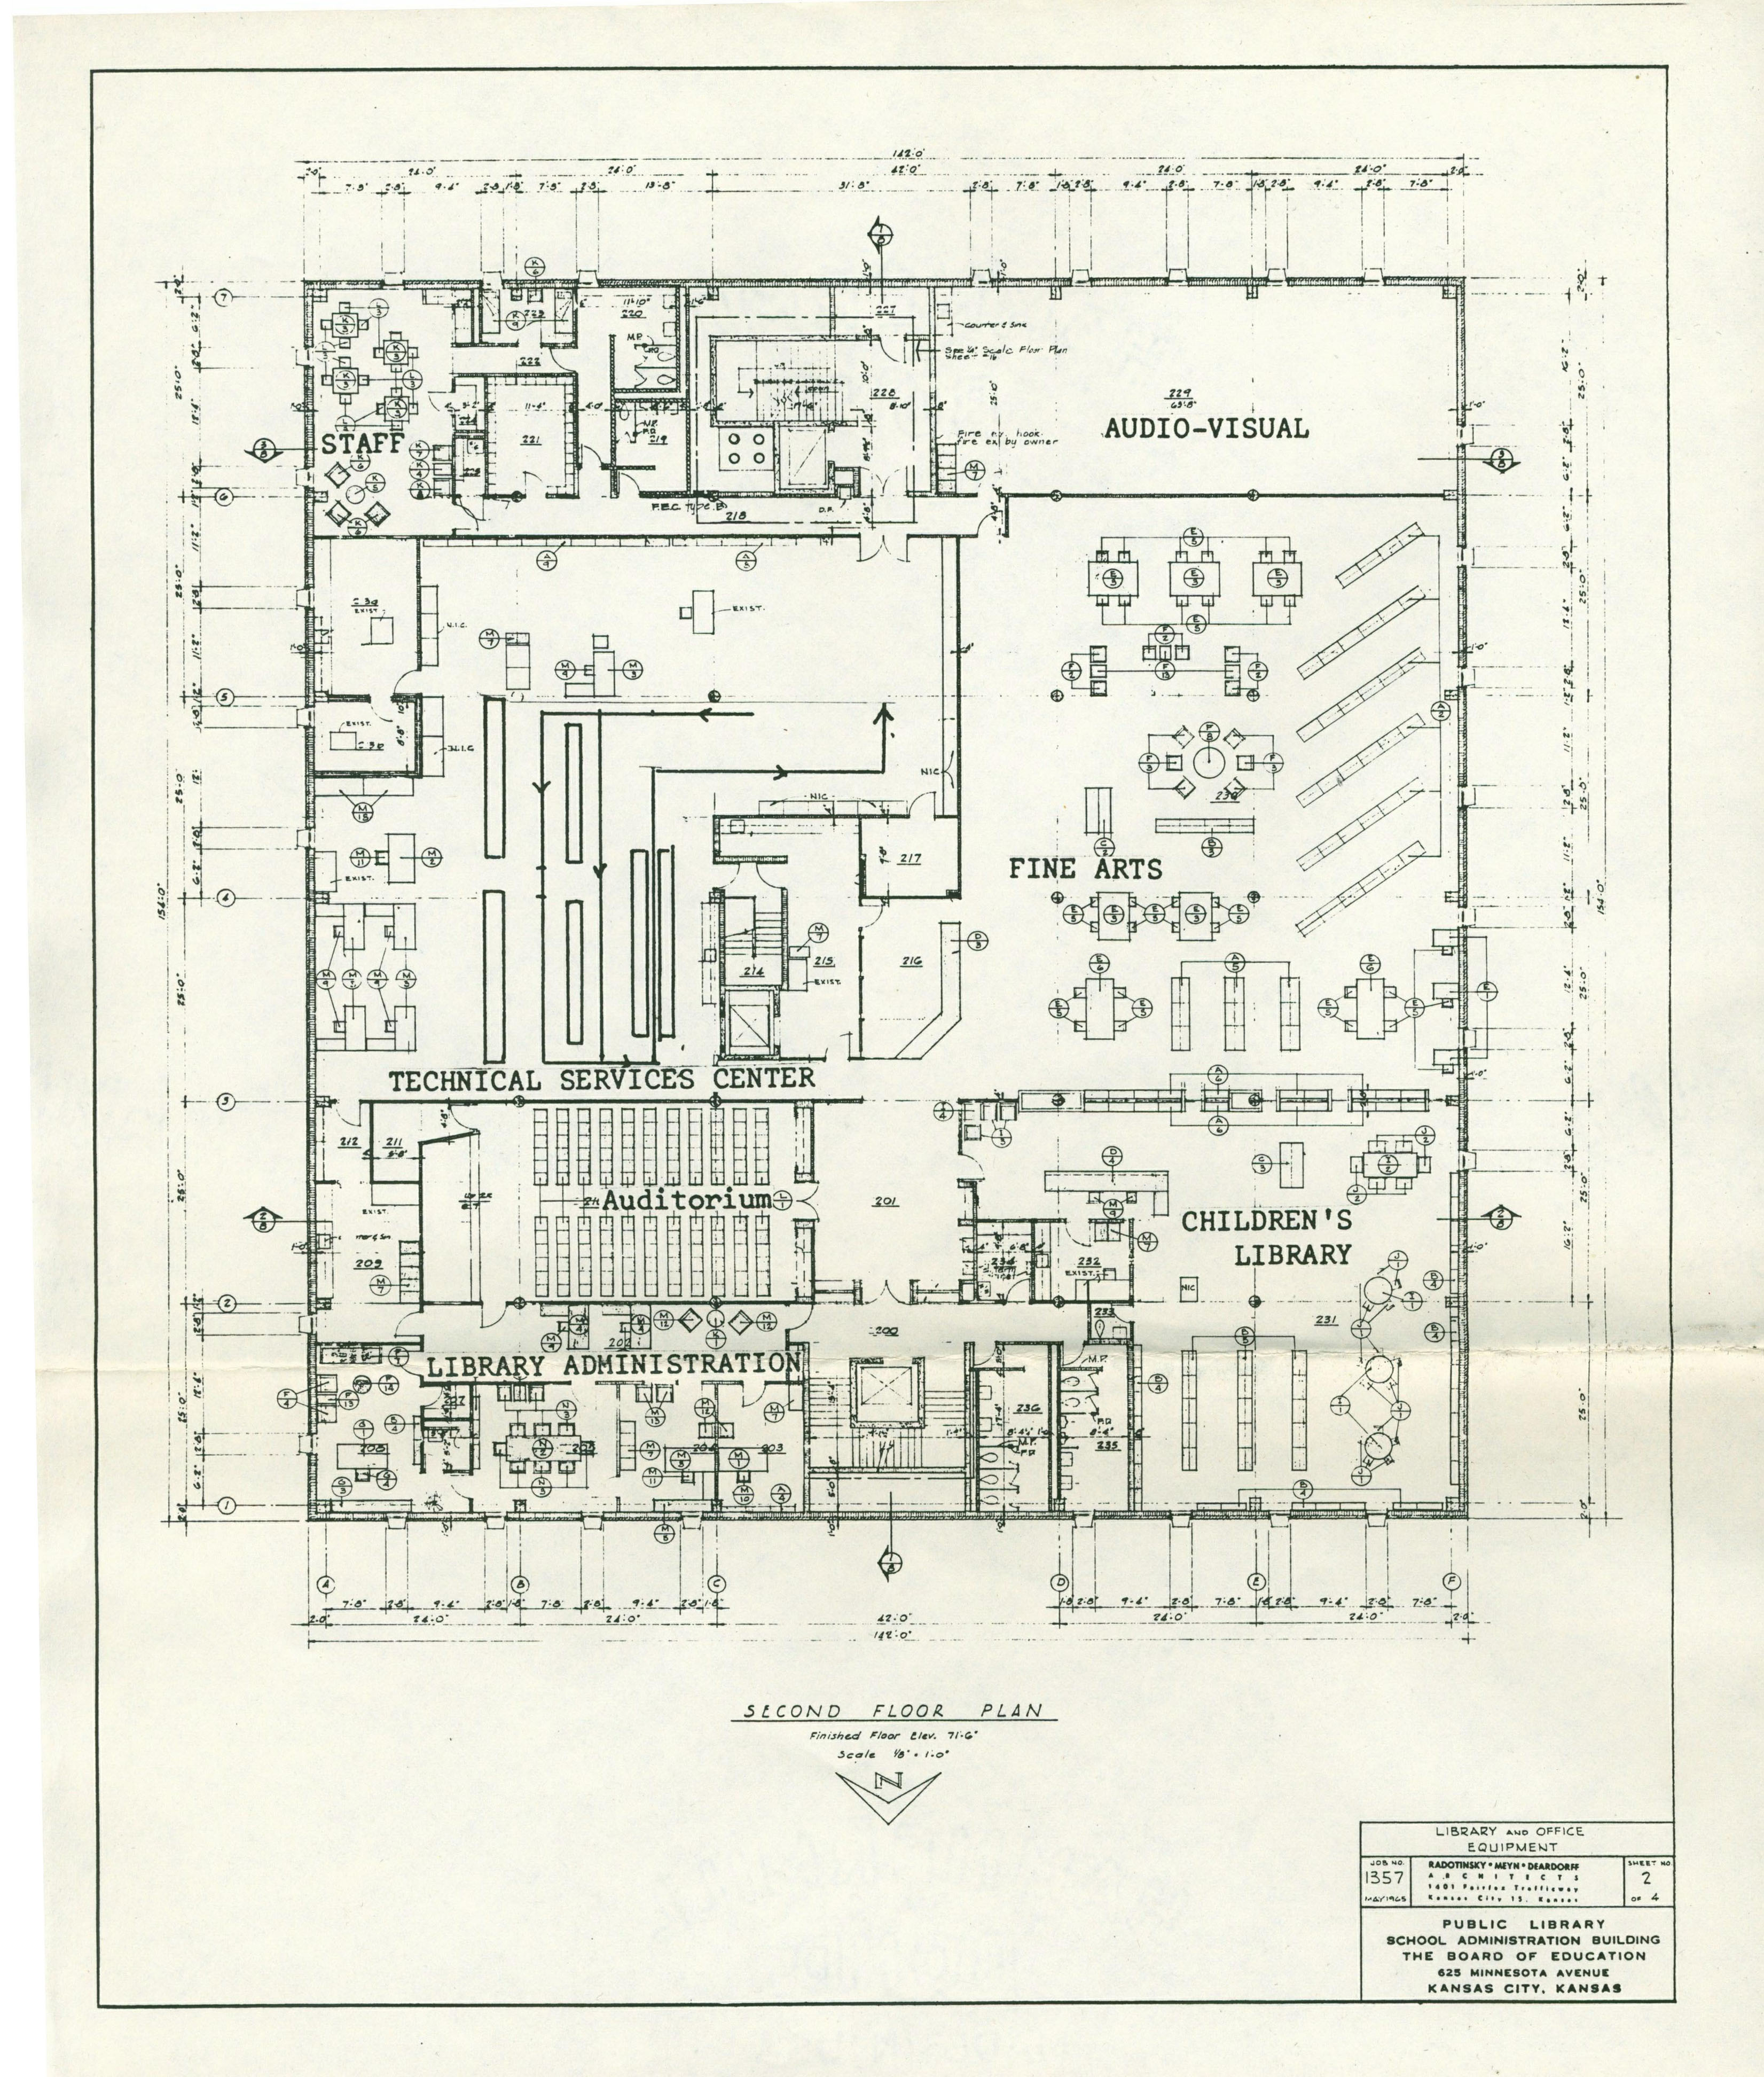 Main Drawing 2nd floor